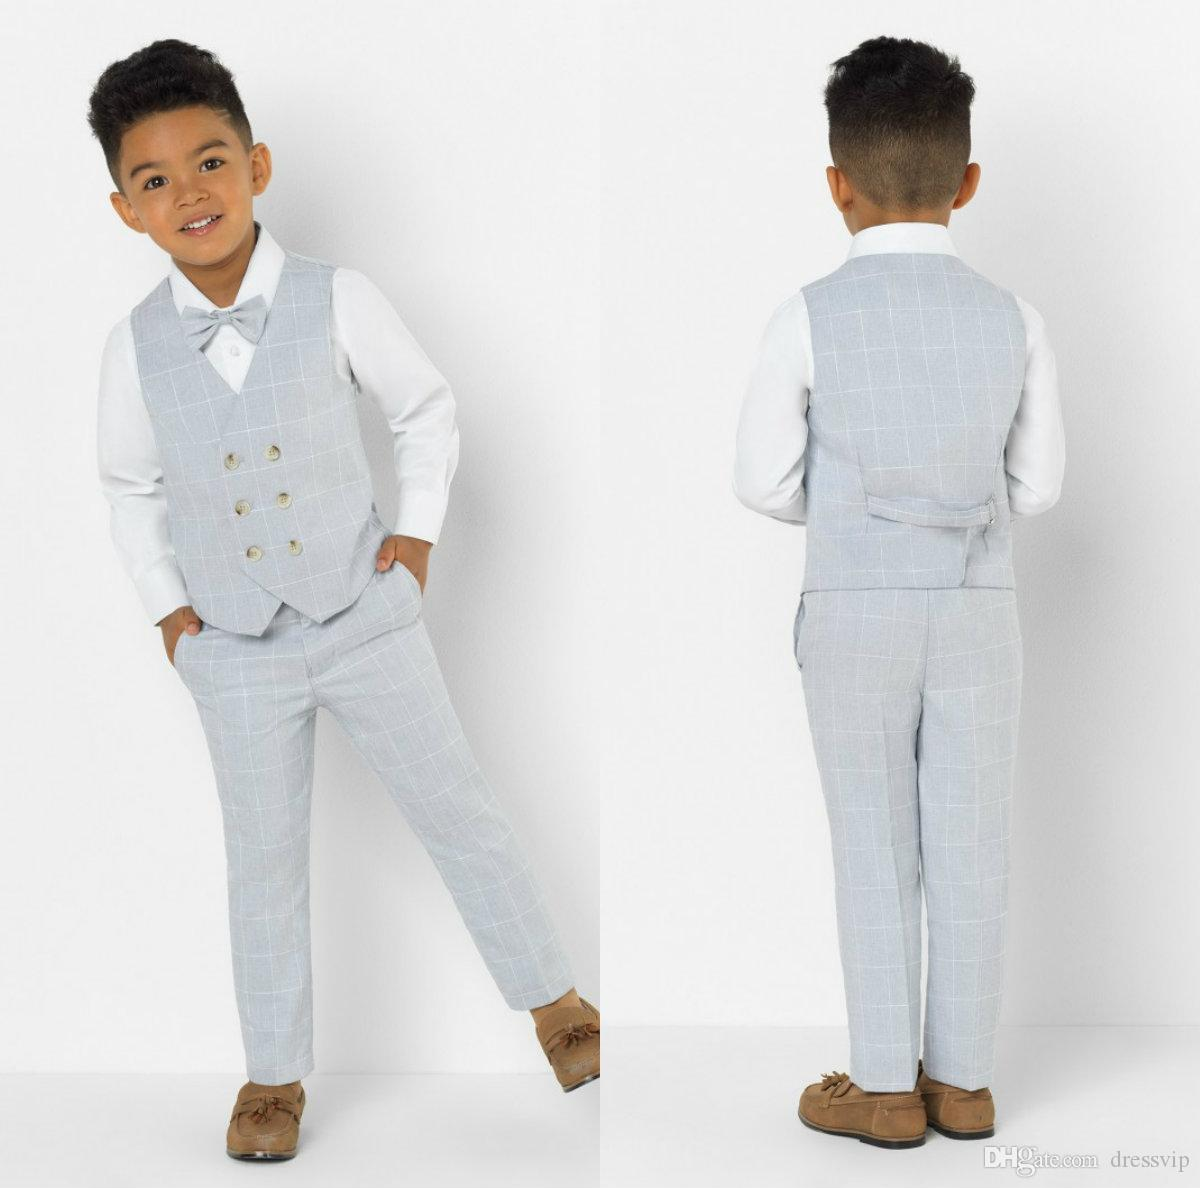 Little Boy Formal Suits Dinner Tuxedos for Beach Wedding Boy Groomsmen Kids Children For Party Prom Suit Formal Wear (Vest+Pants)